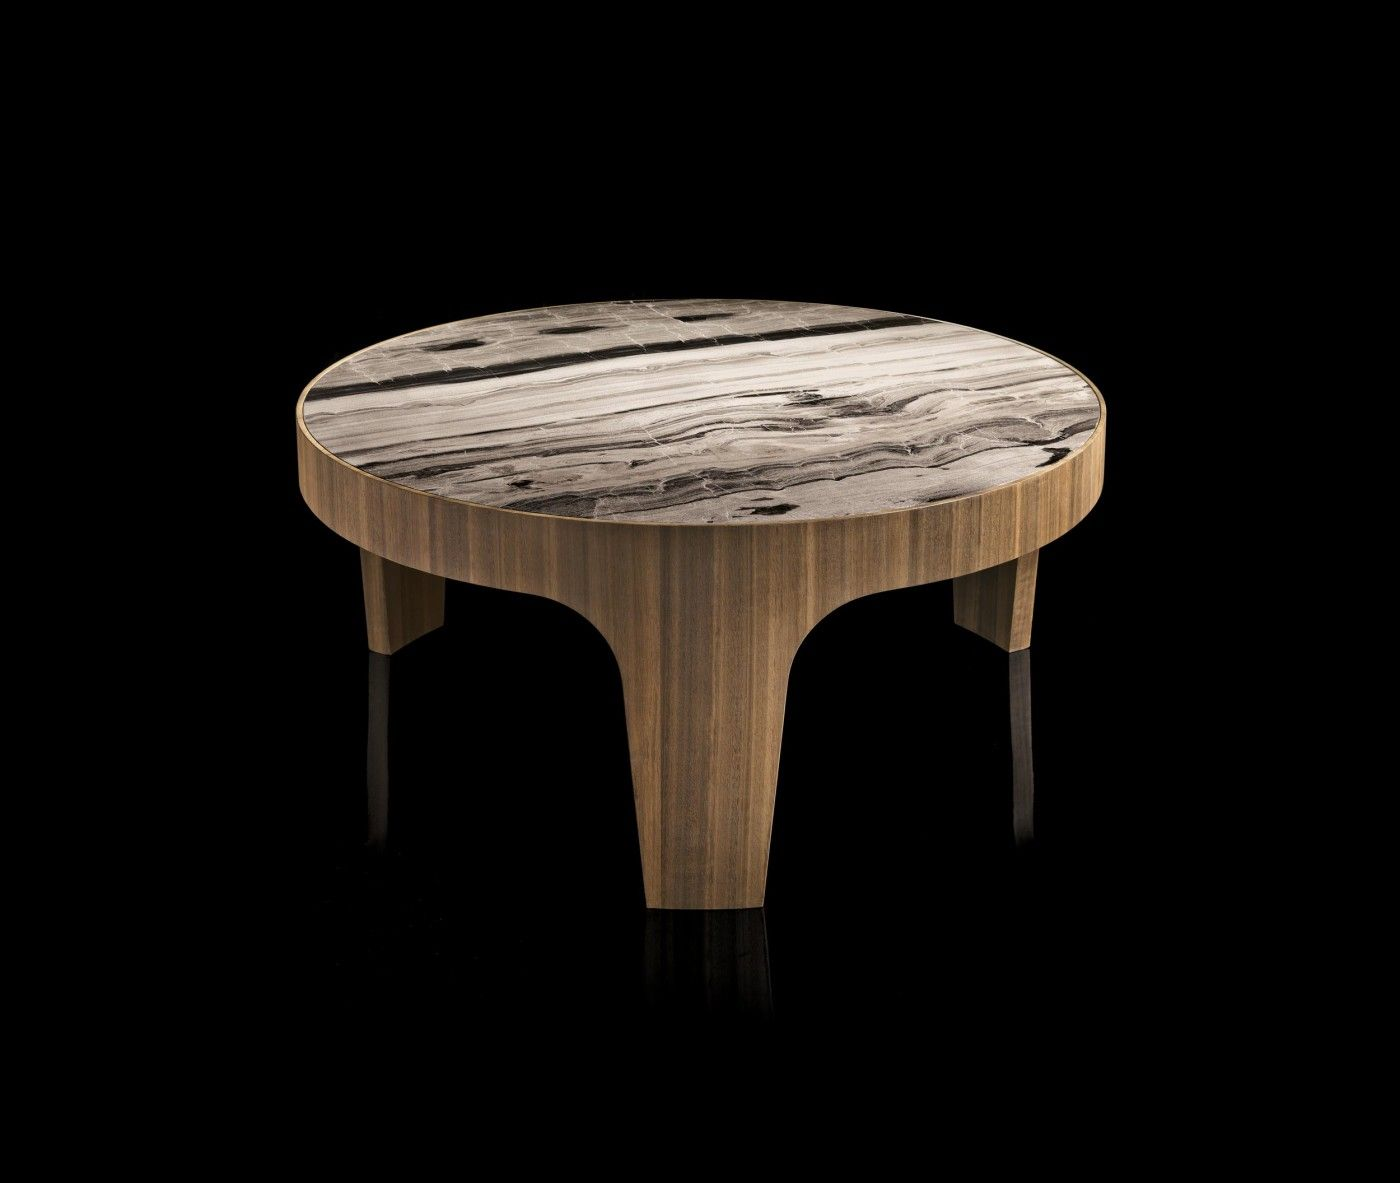 Structure Curved Shaped Wood Thickness 3 Cm Finish Heat Treated Woods As Our Samples And Swamp Oak O Furniture Design Coffee Table To Dining Table Furniture [ 1183 x 1400 Pixel ]